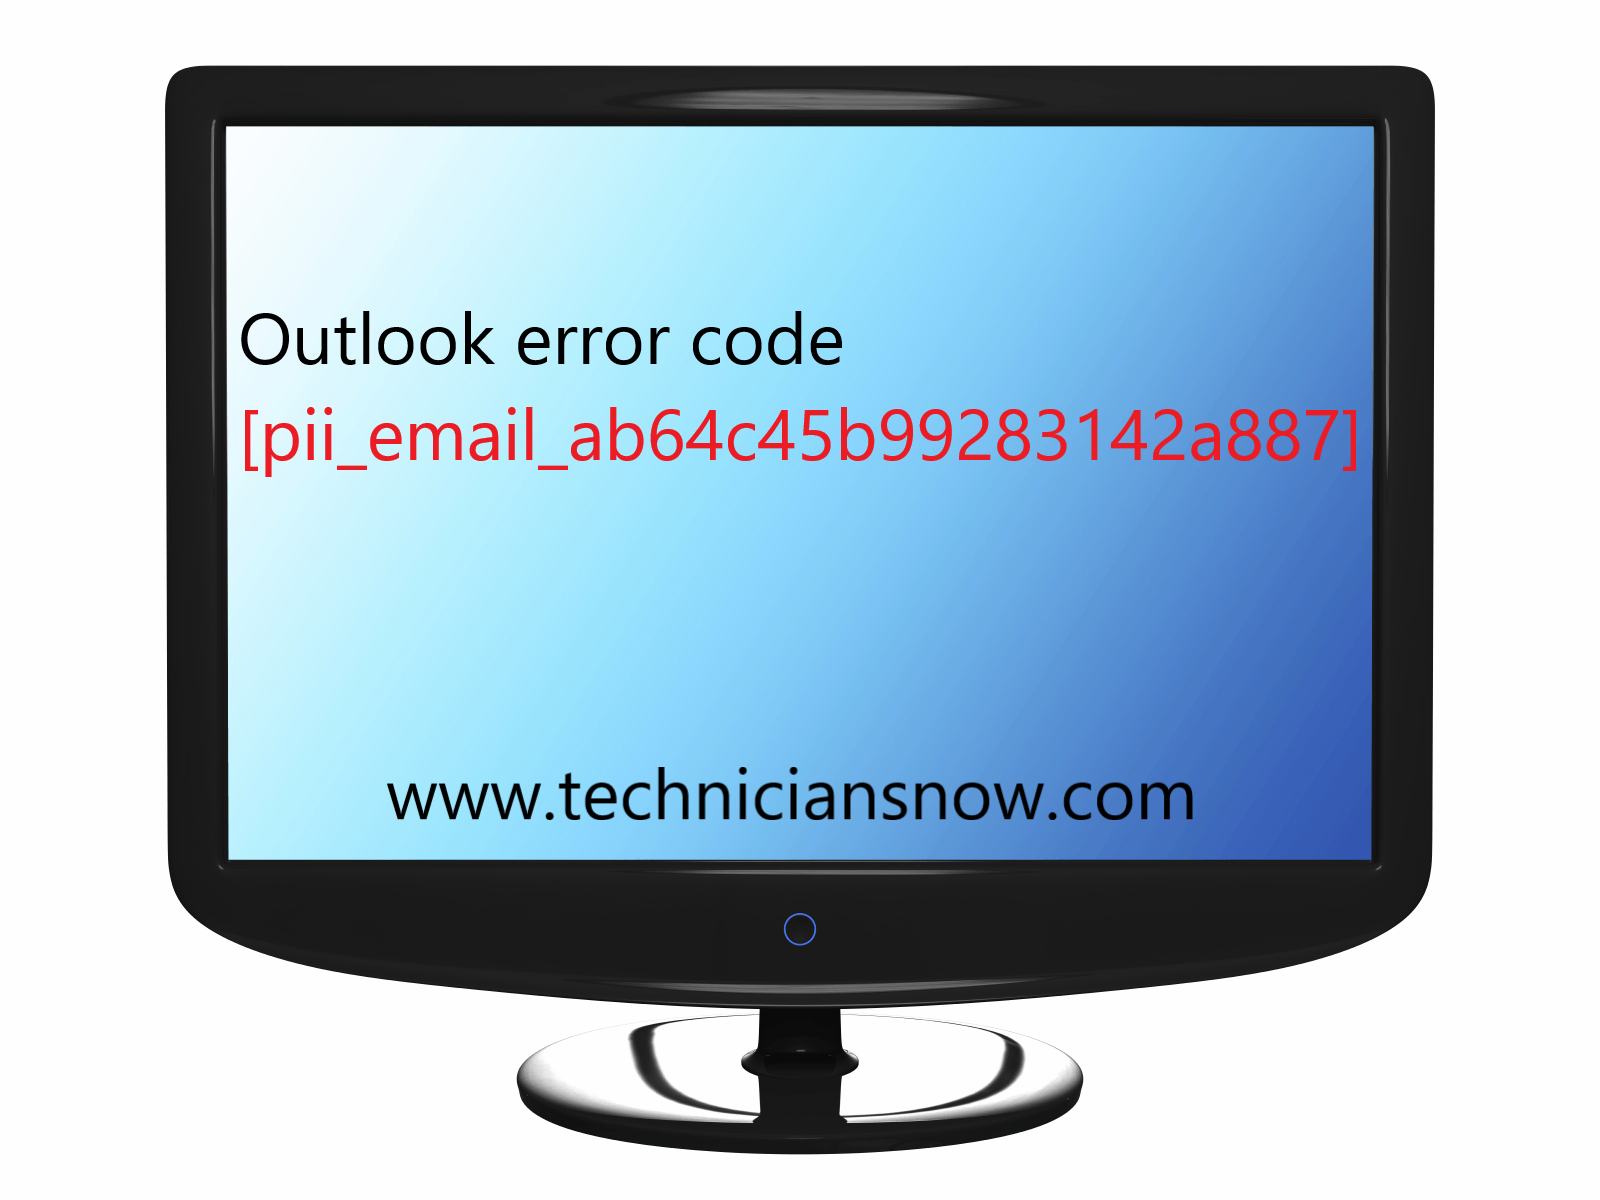 Outlook error code [pii_email_ab64c45b99283142a887]